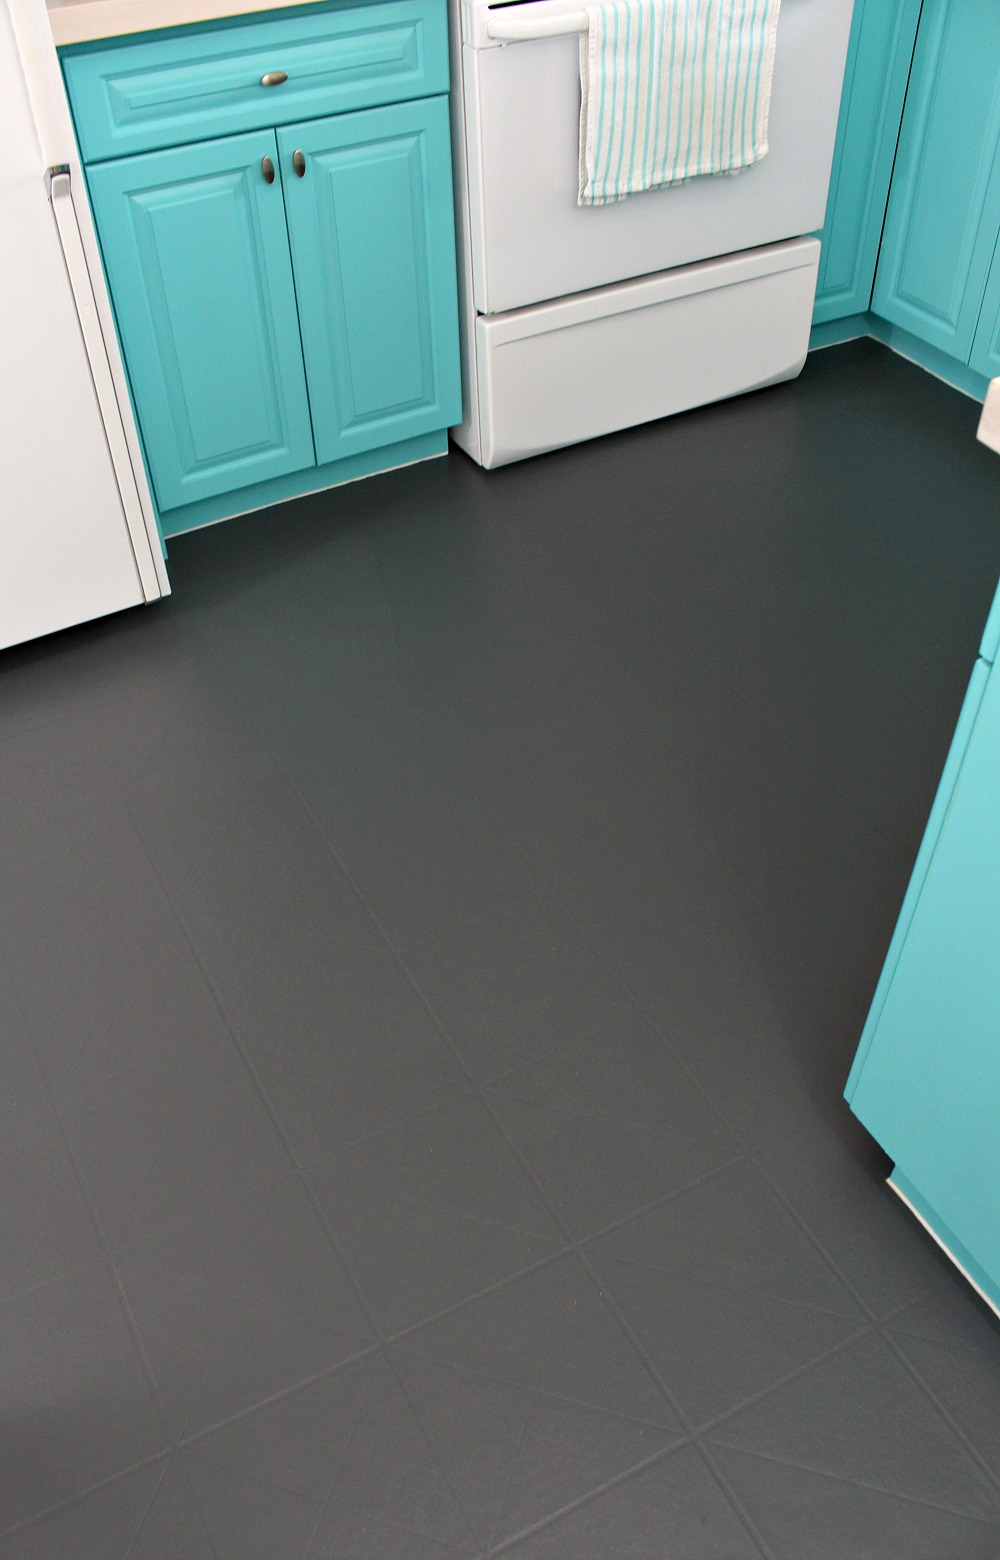 Paint Kitchen Floor Tiles How To Paint A Vinyl Floor Diy Painted Floors Dans Le Lakehouse